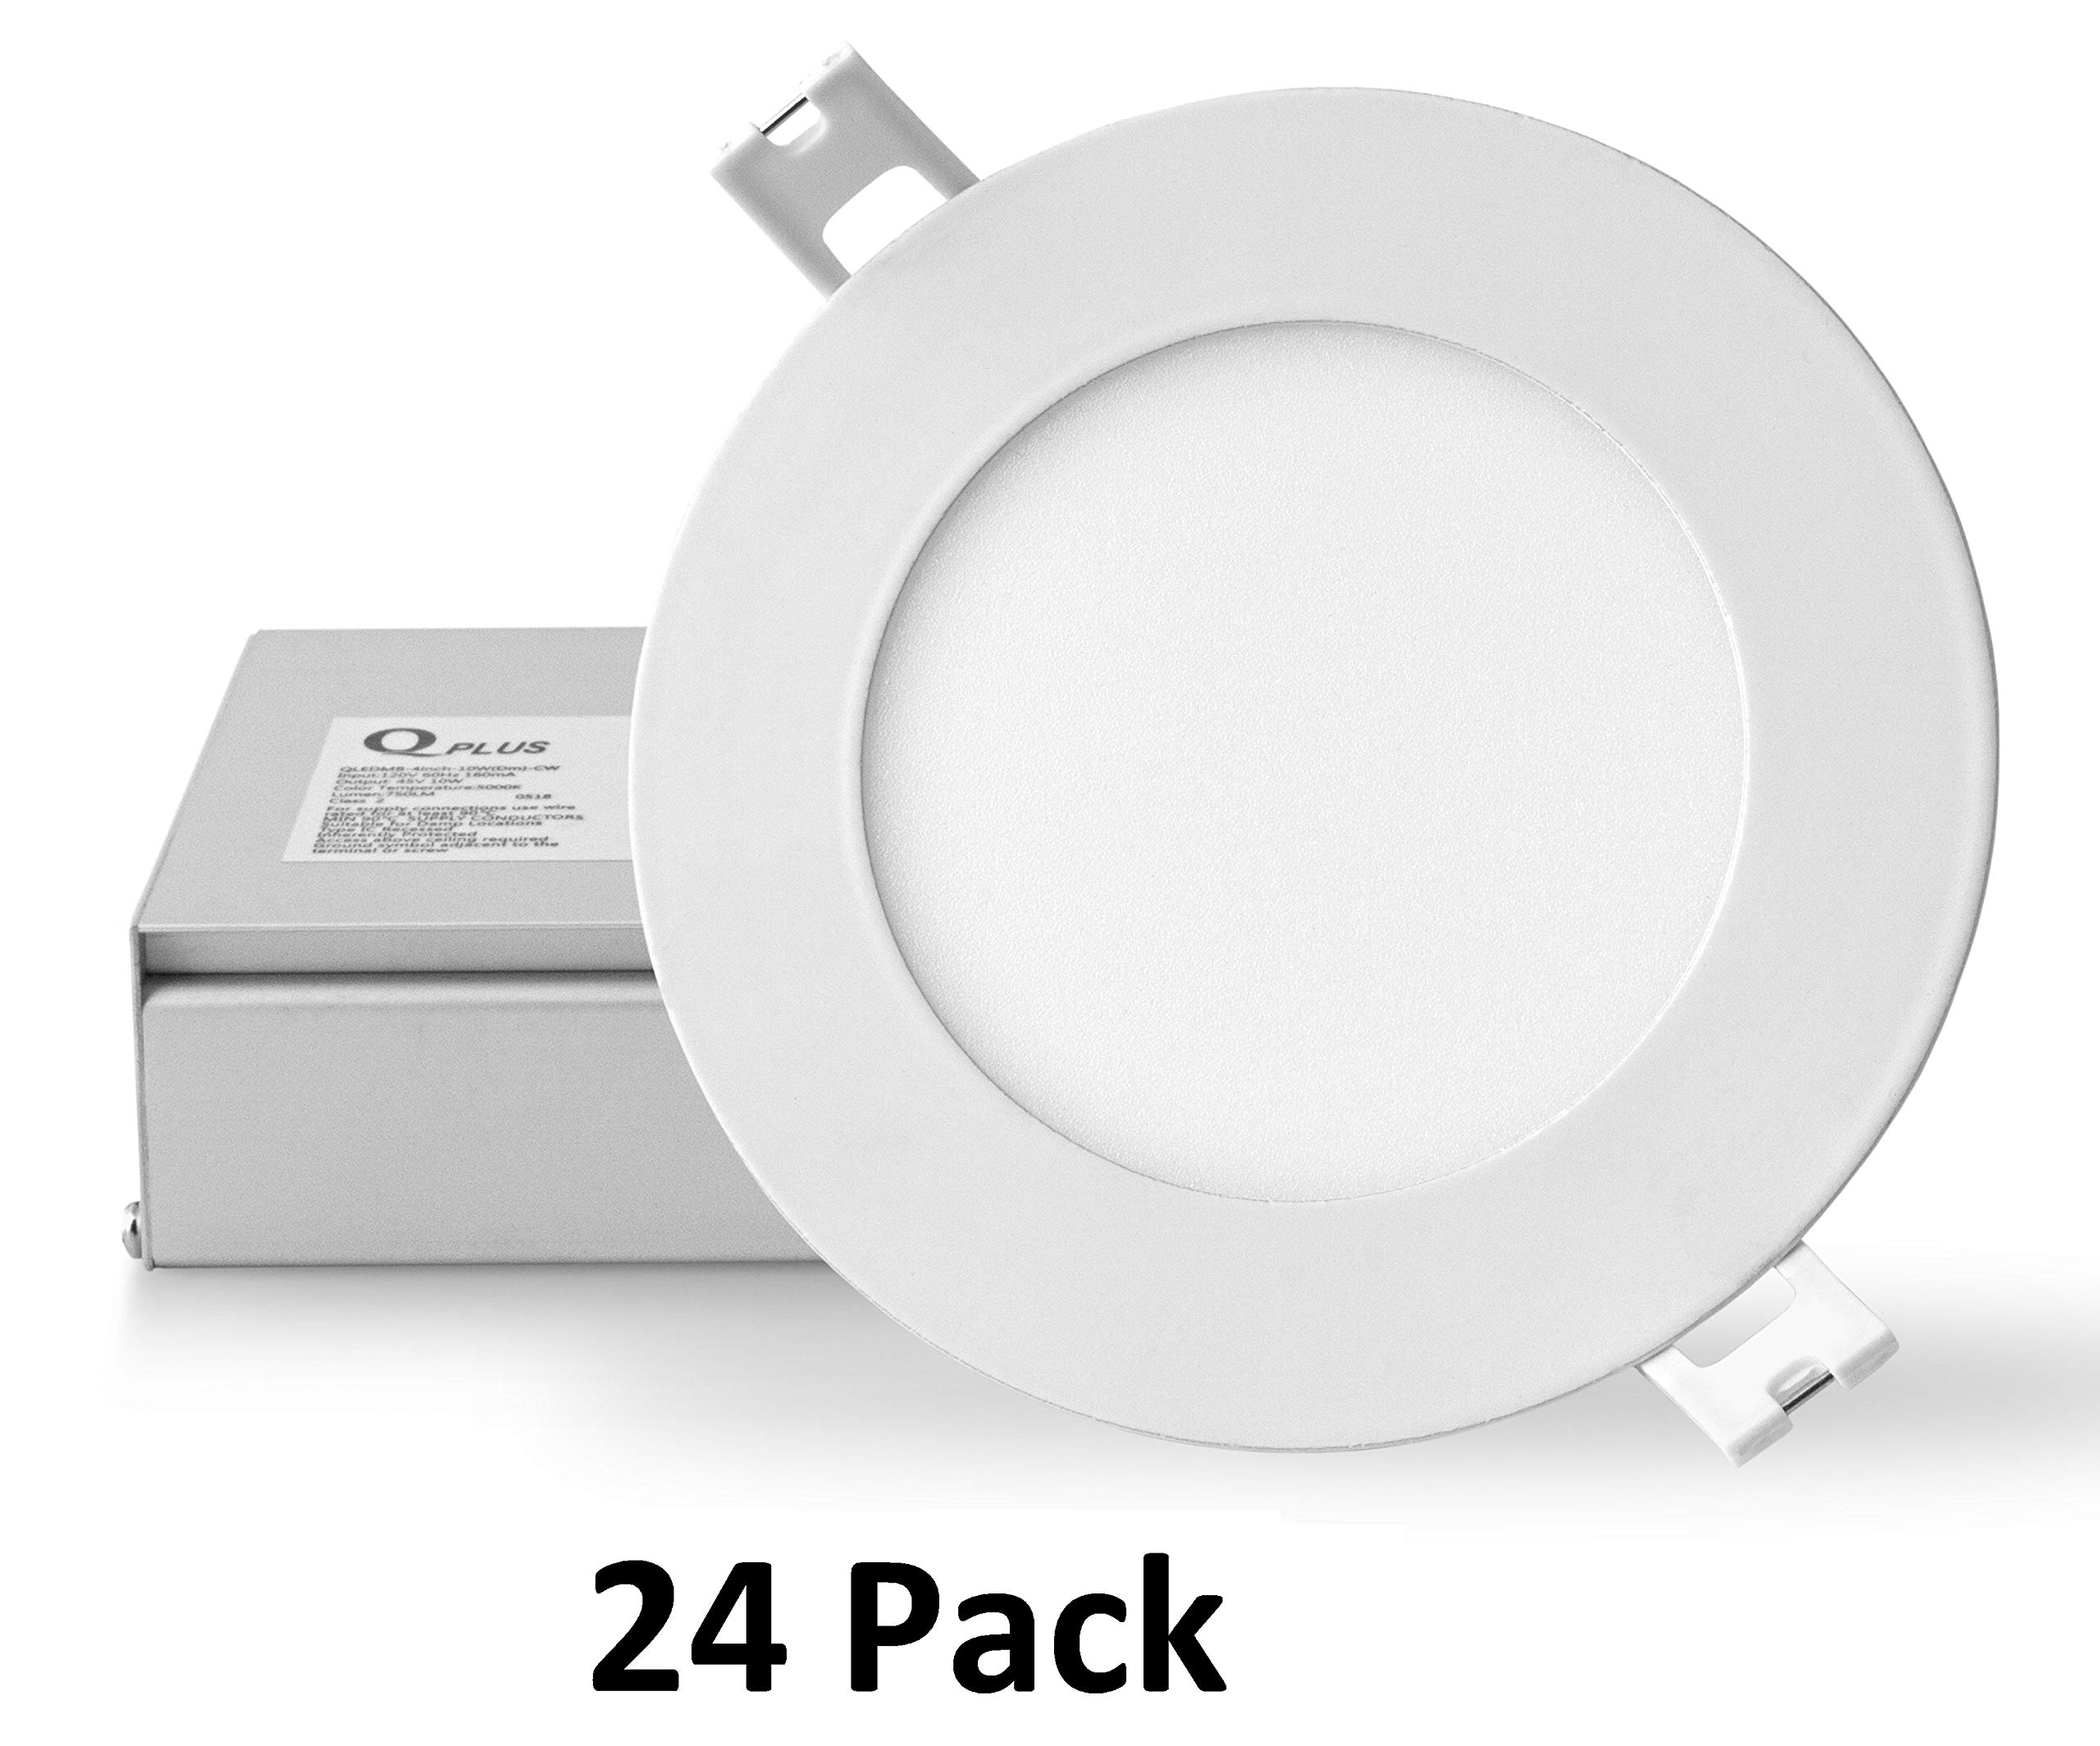 QPLUS 4 Inch 10W LED Recessed Lighting (5000K Daylight, 24 Pack), Ultra Thin Slim Wafer Low Profile Ceiling Light, Canless Downlight Kit with Junction Box, Dimmable, 750 lm, Energy Star + ETL Listed